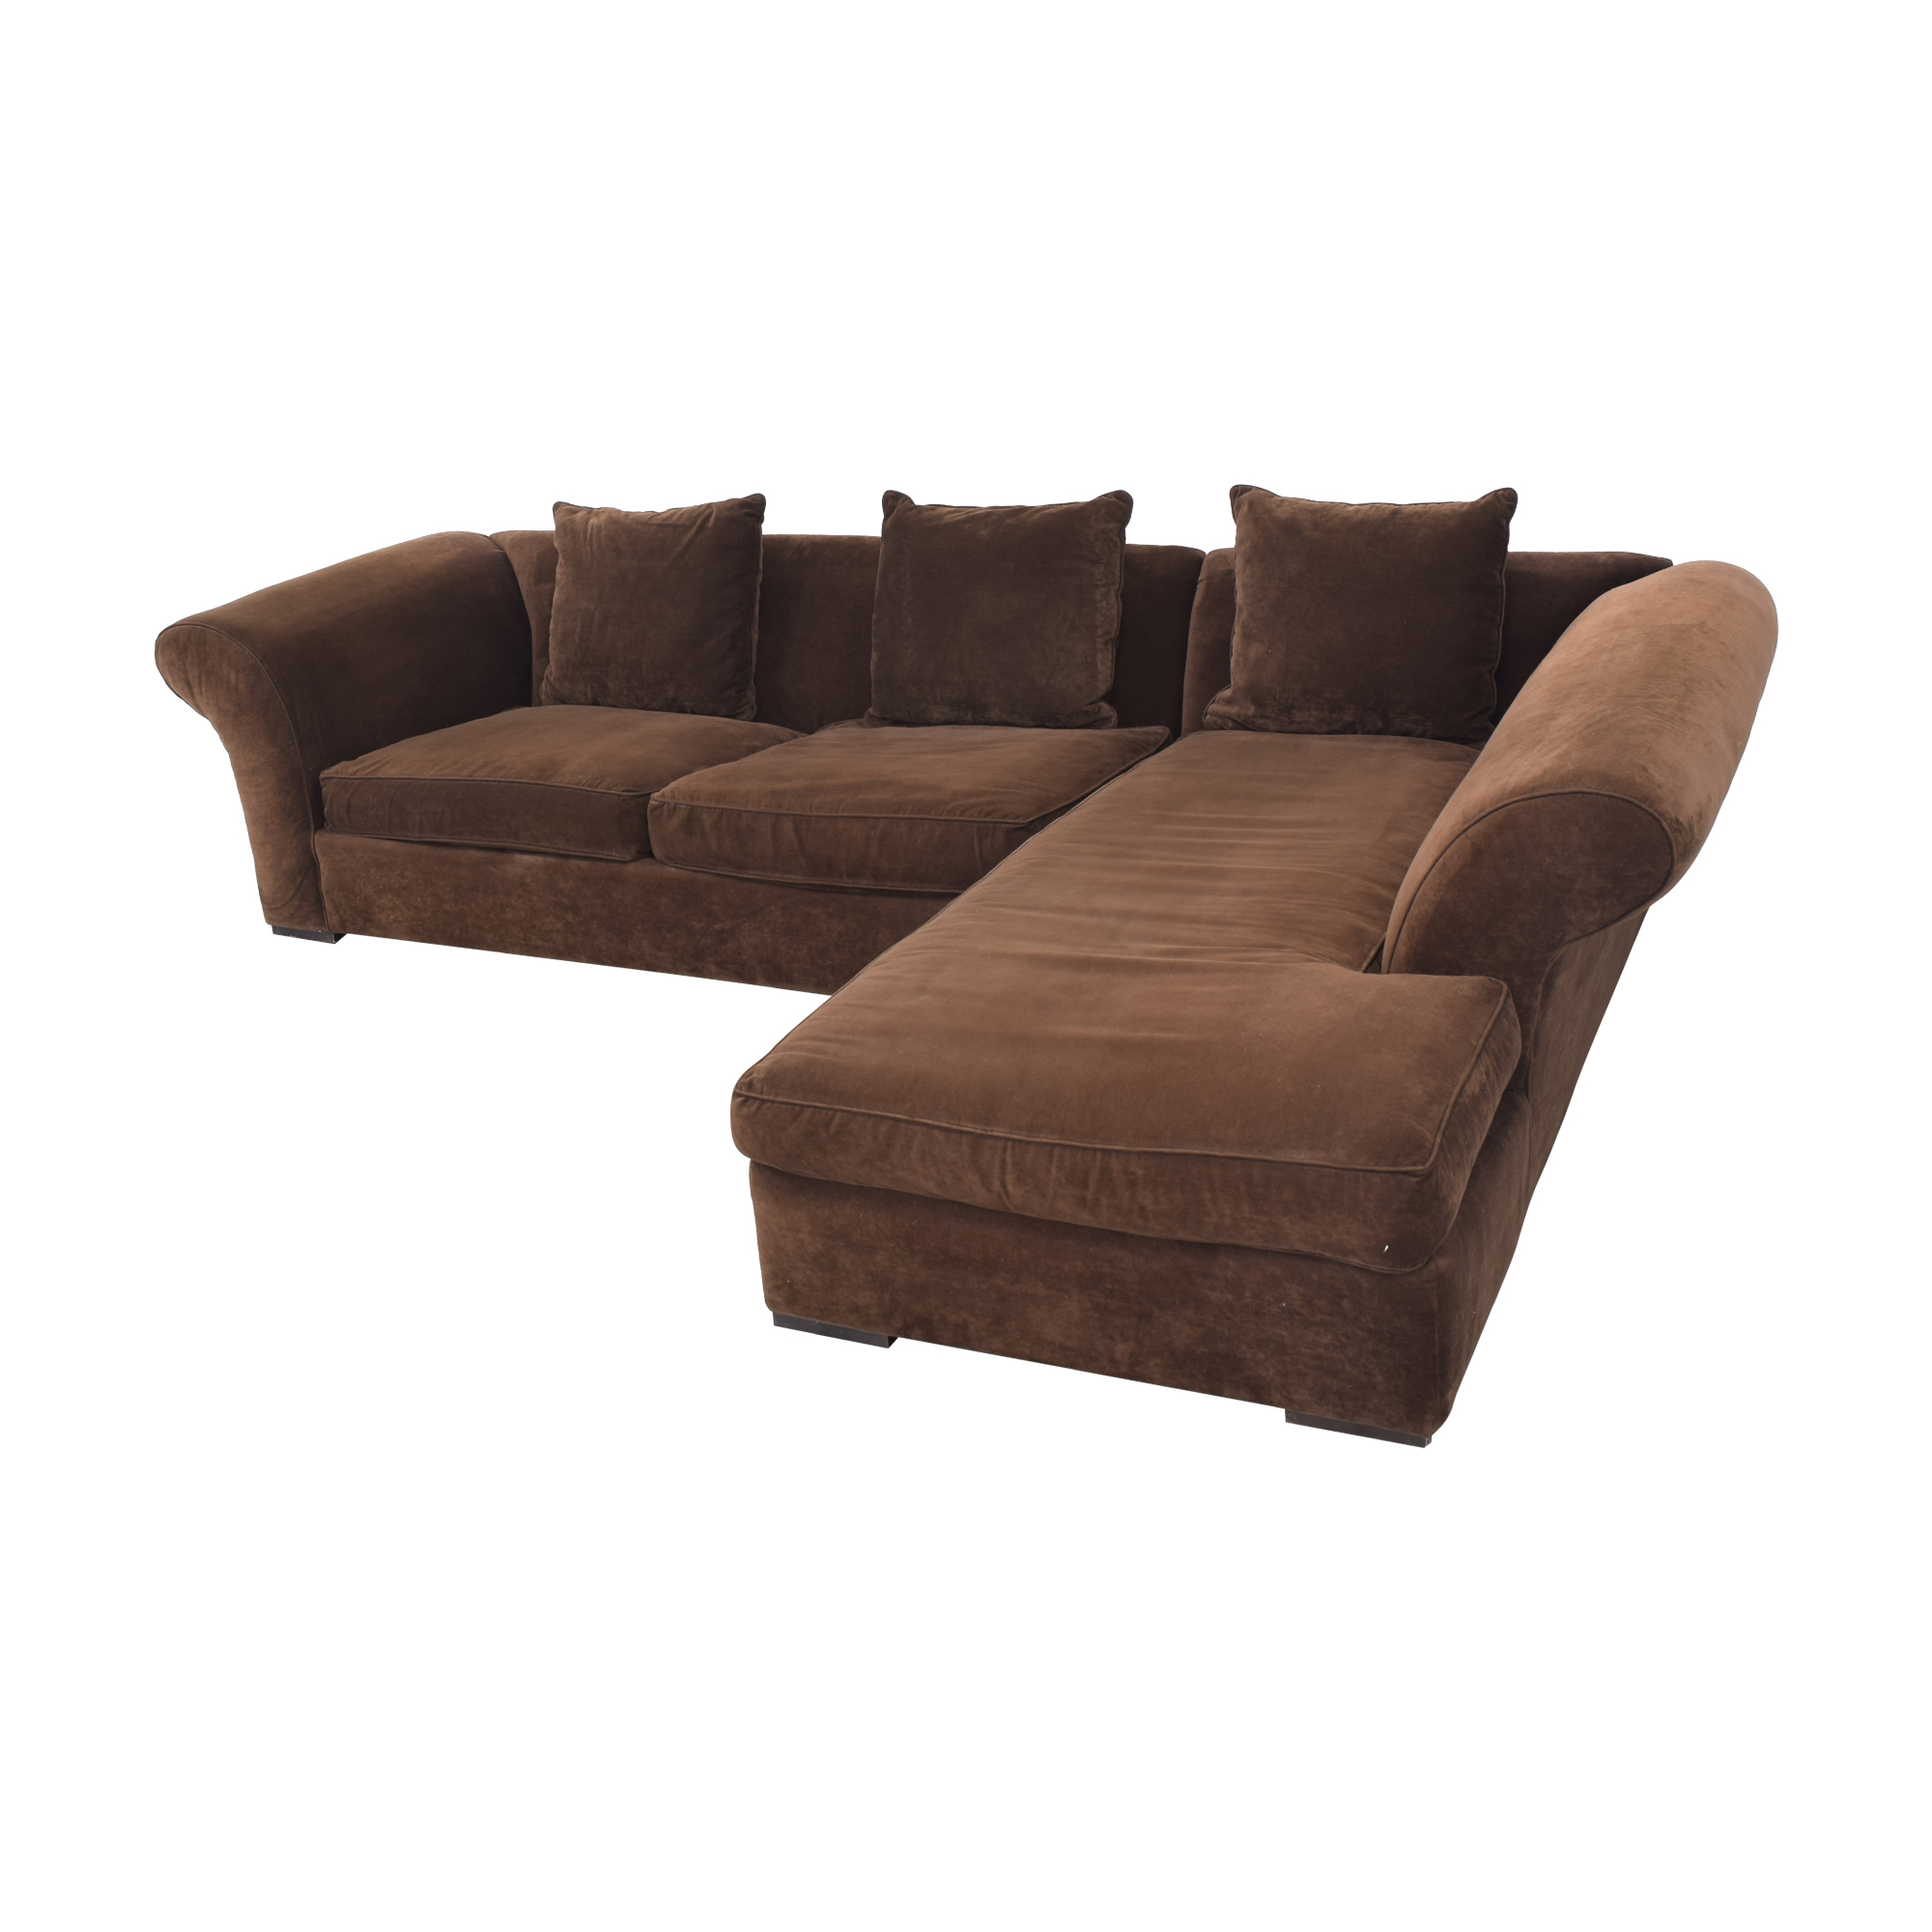 Rowe Furniture Rowe Furniture Sectional Sofa with Chaise for sale